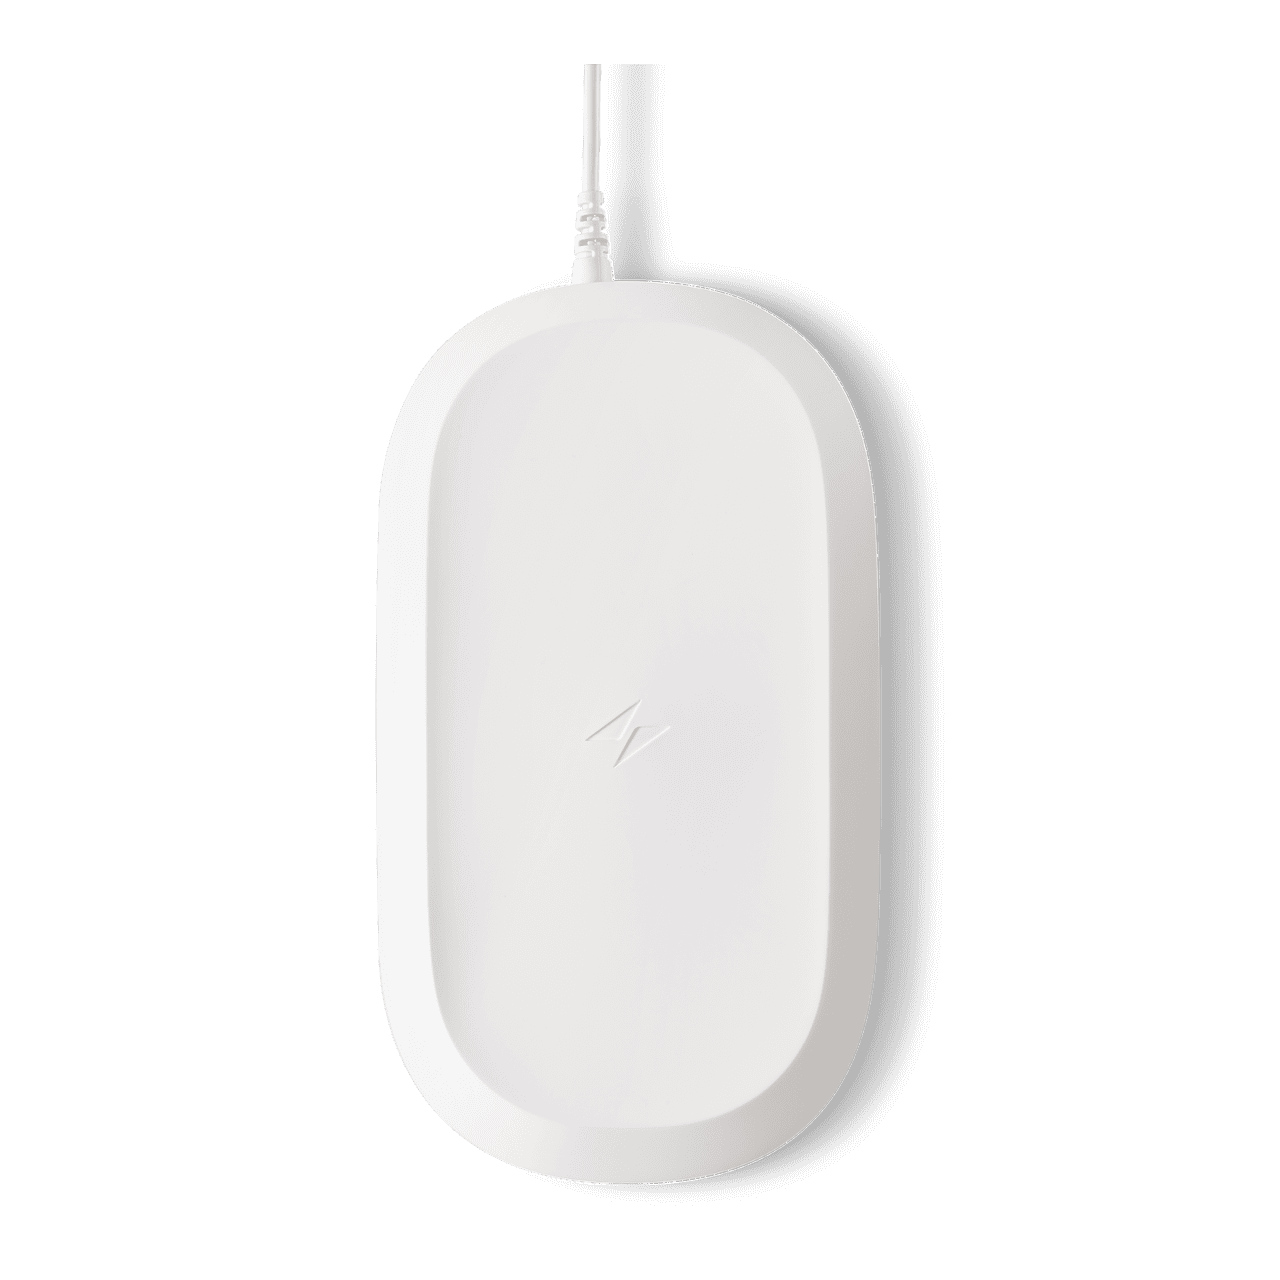 SanDisk iXpand™ Wireless Charger 128 GB for $79.99